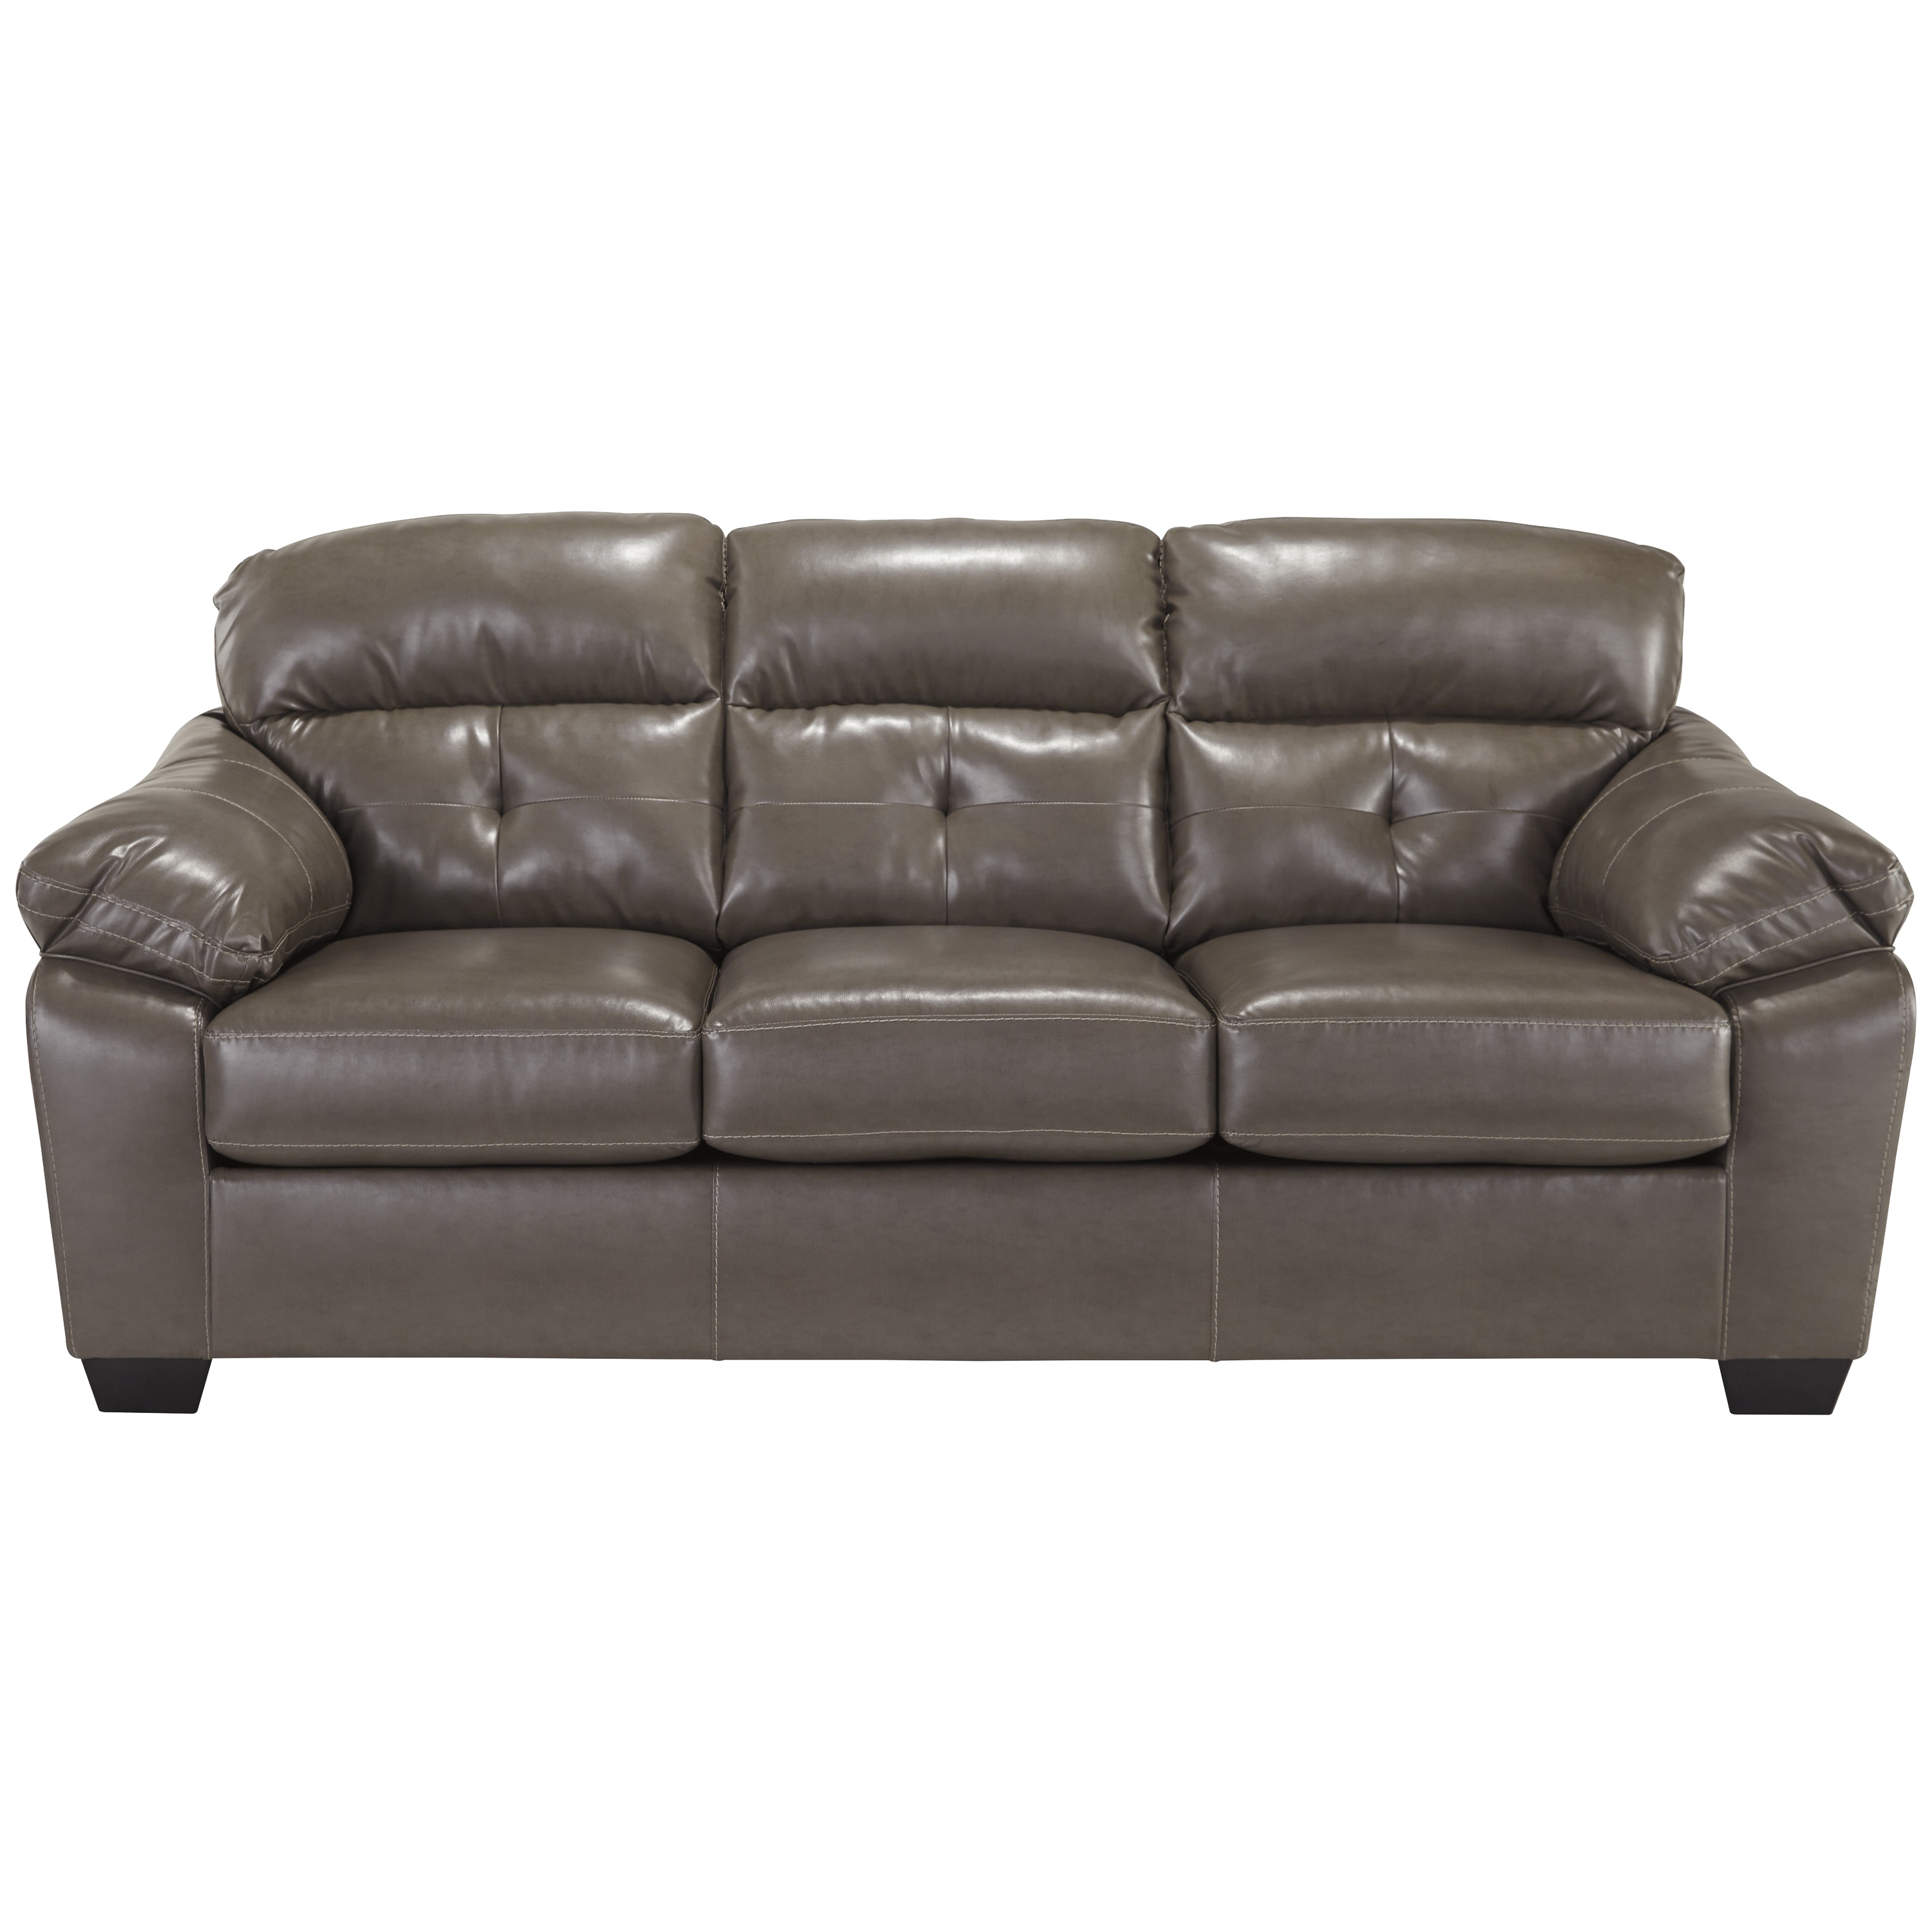 Benchcraft Bastrop Durablend Sofa Free Shipping Today 10356181